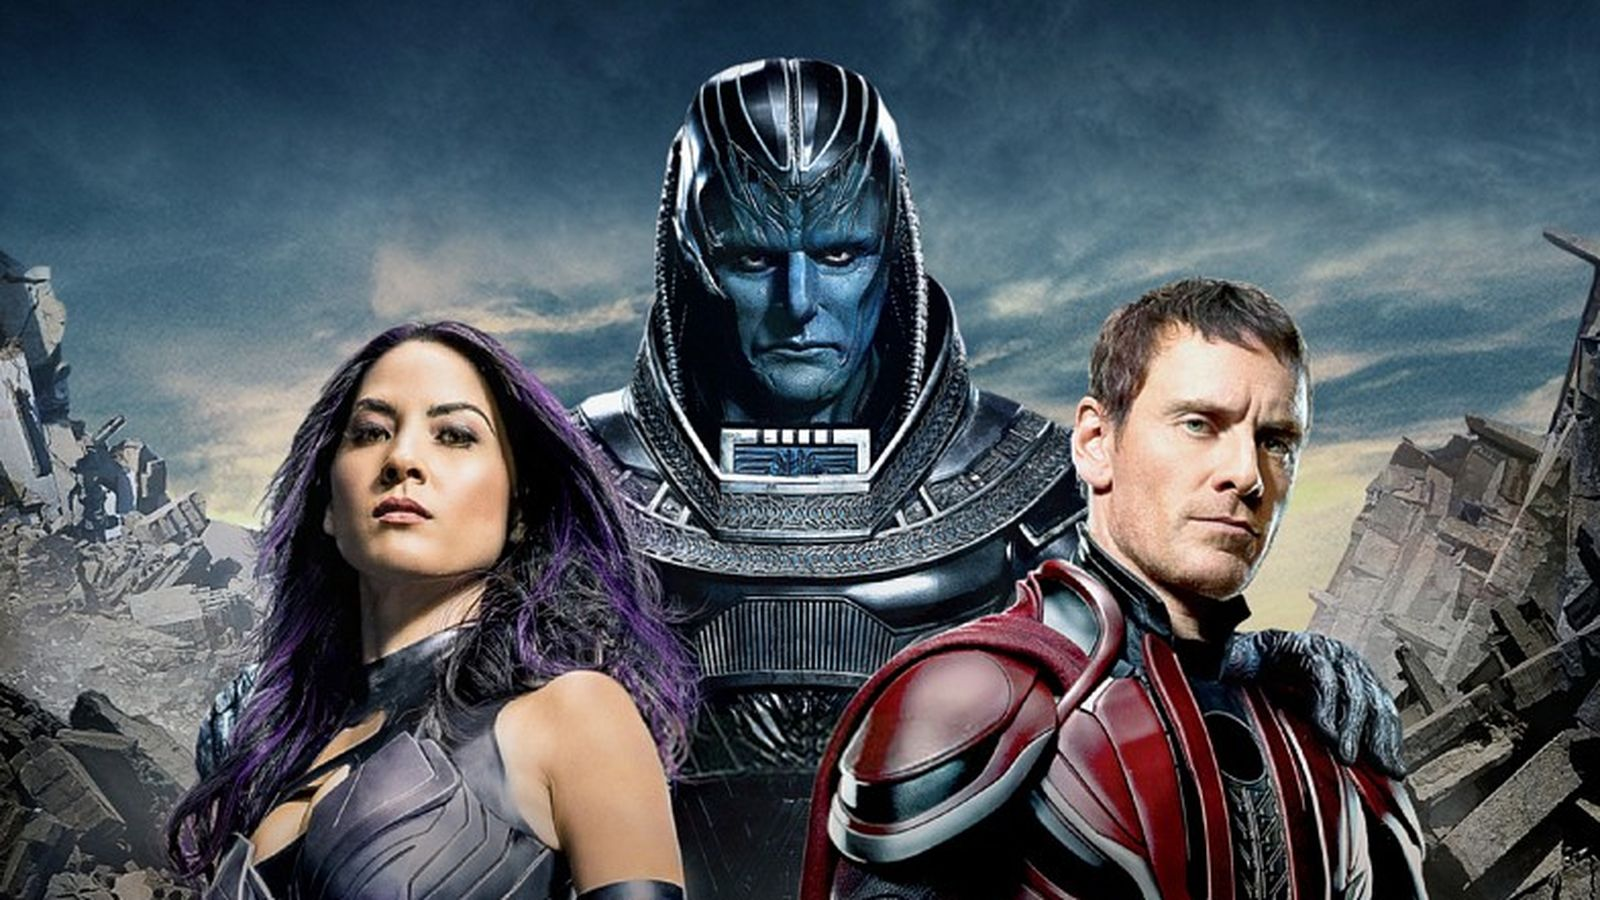 Segundo trailer de X-Men: Apocalipse